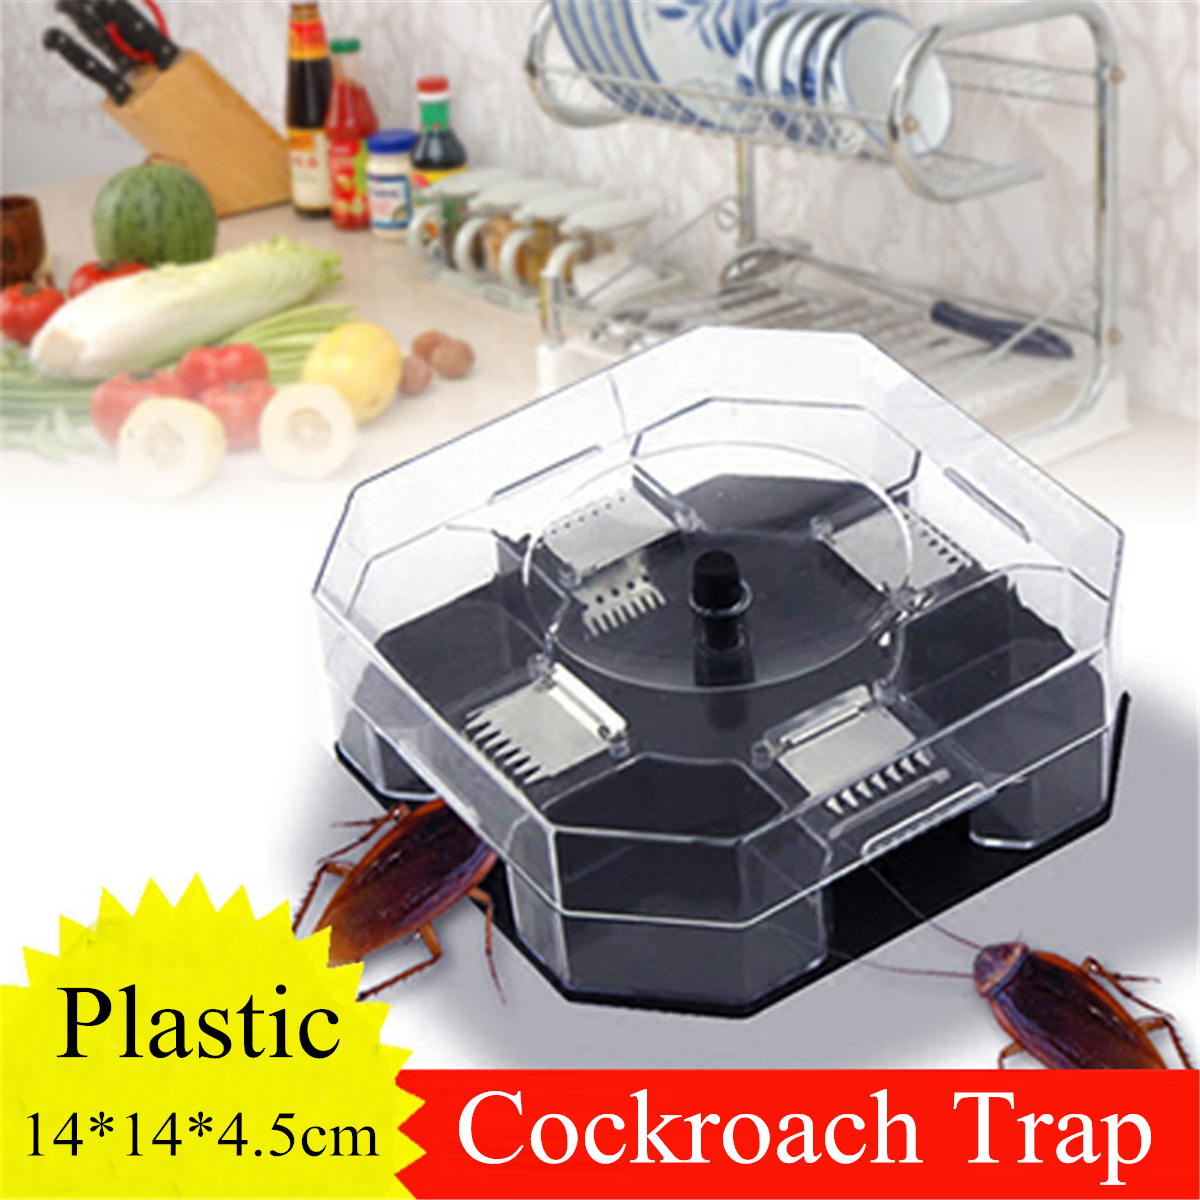 Large Cockroach Lizard Insect Trap Killer ECO Non Poison Reusable Catcher Box Snail Slug Trapper